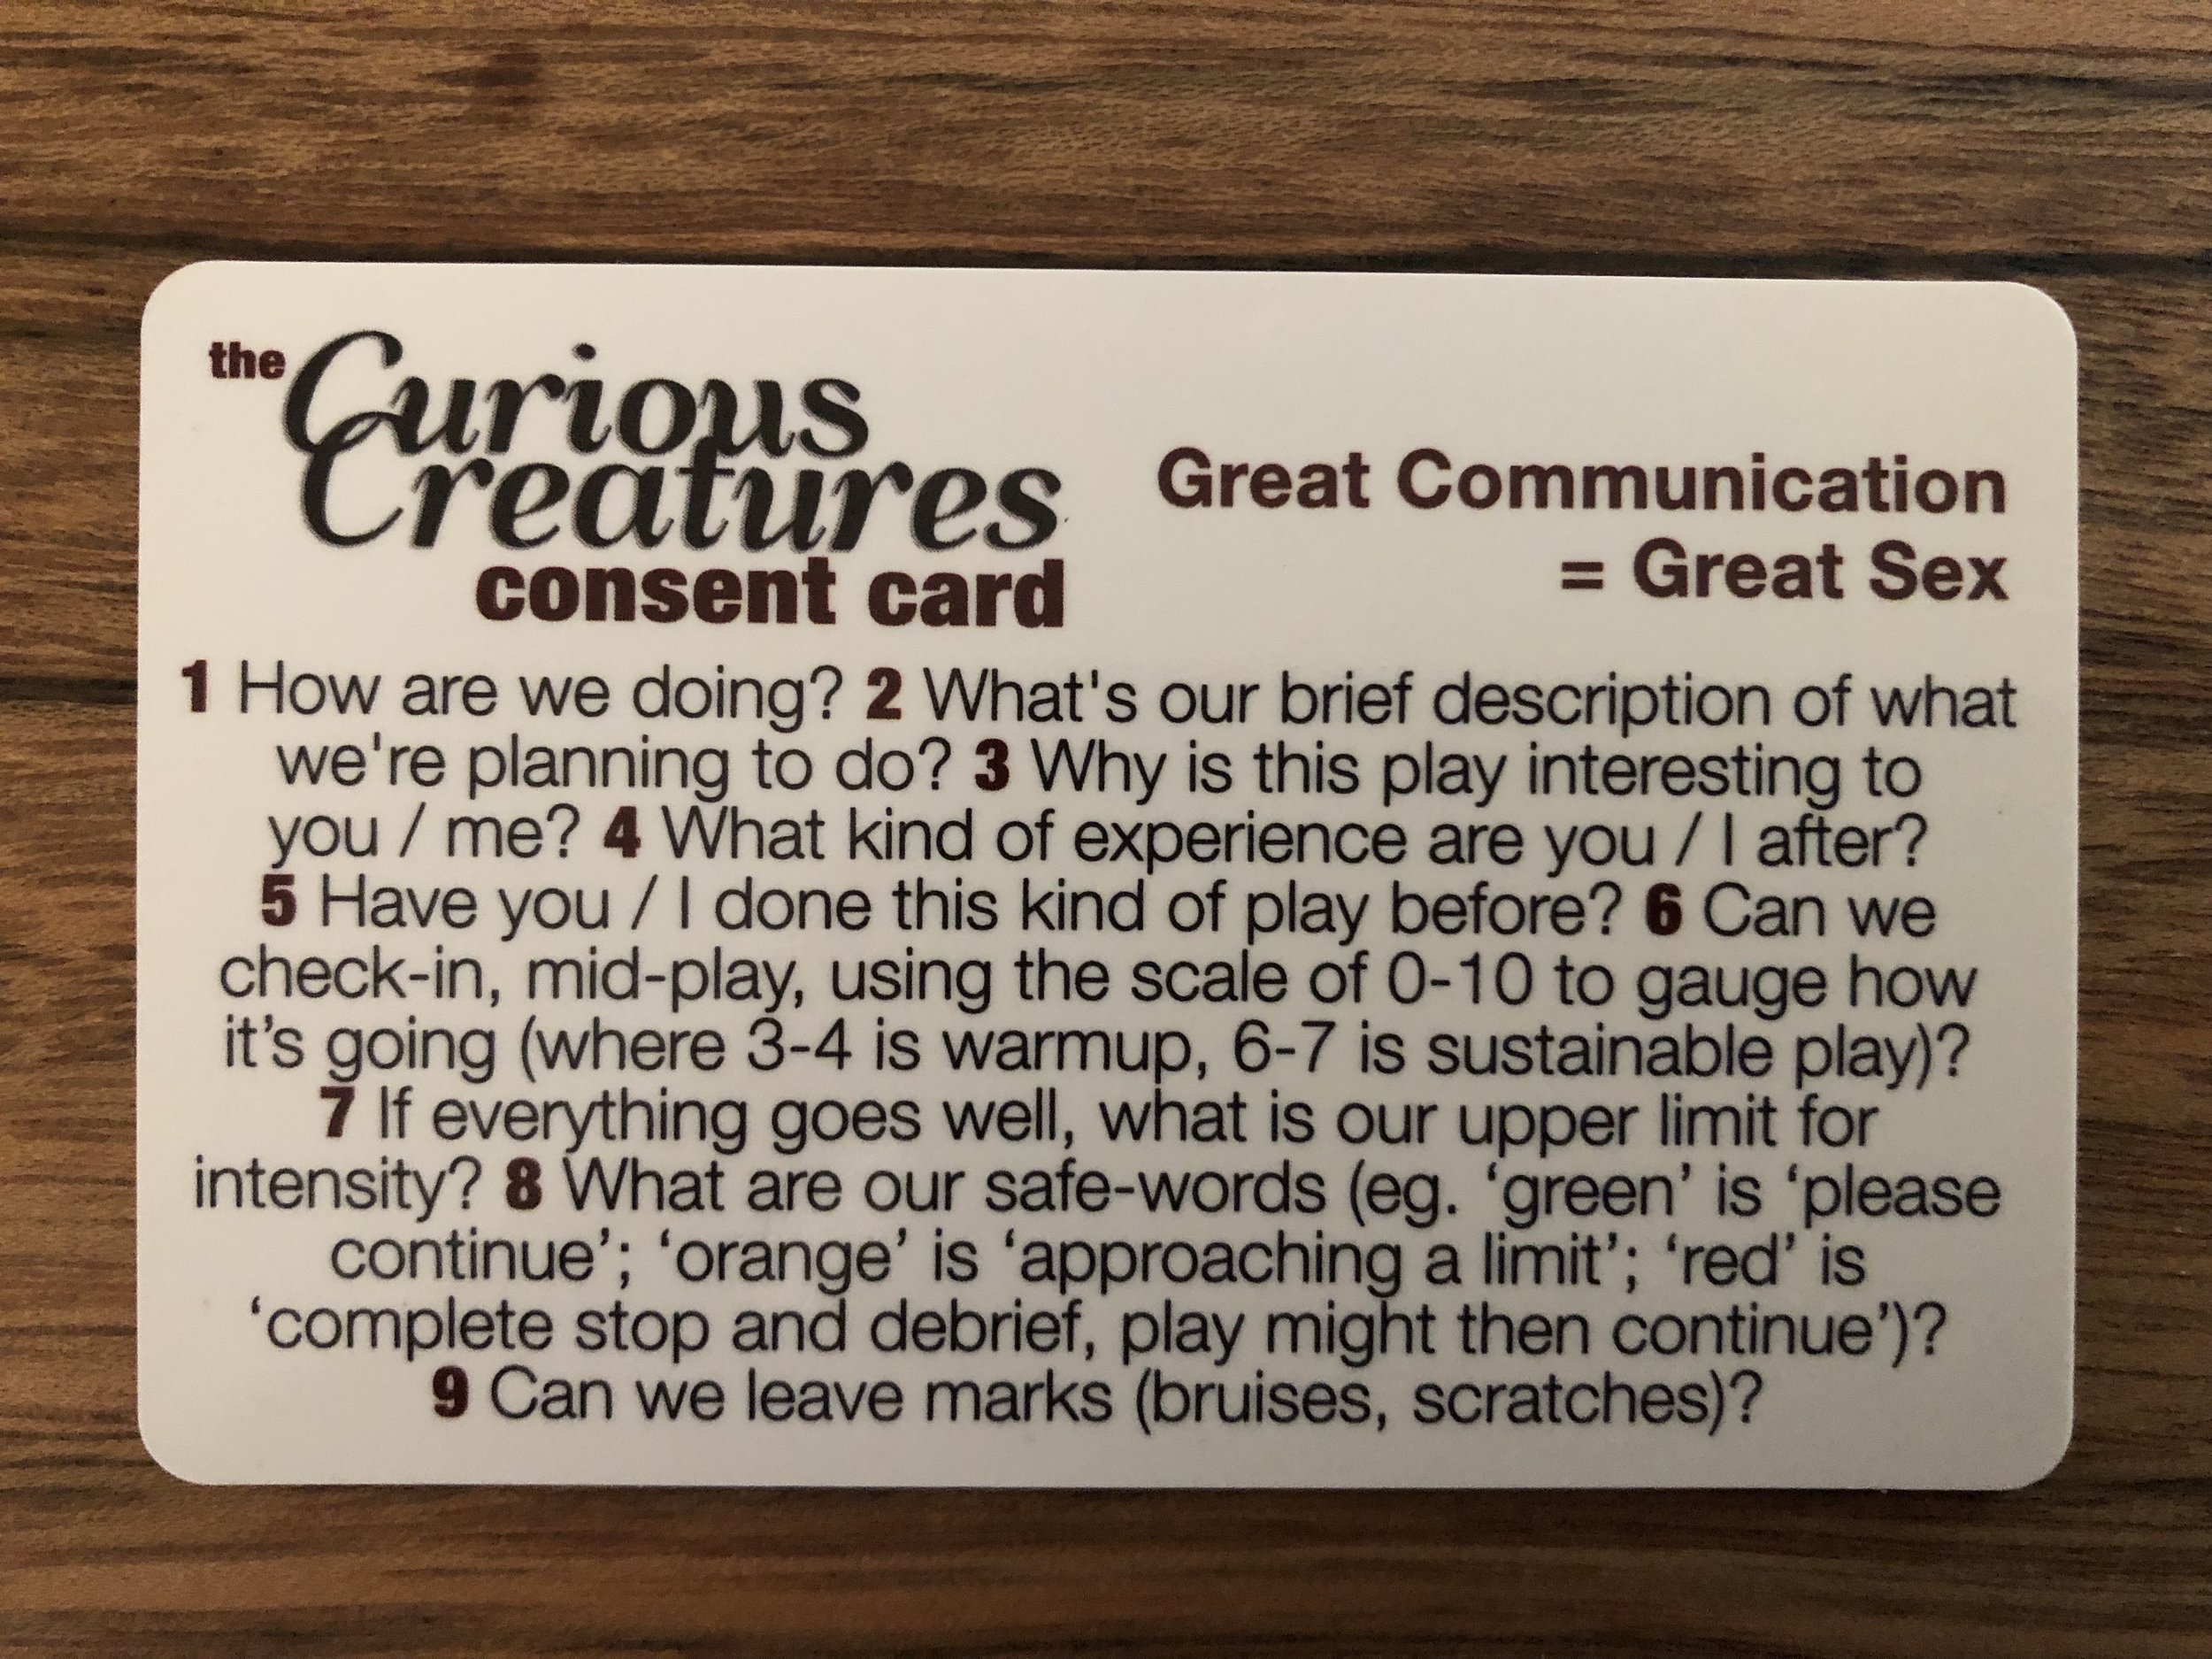 Curious Creatures Consent Card - side 1.